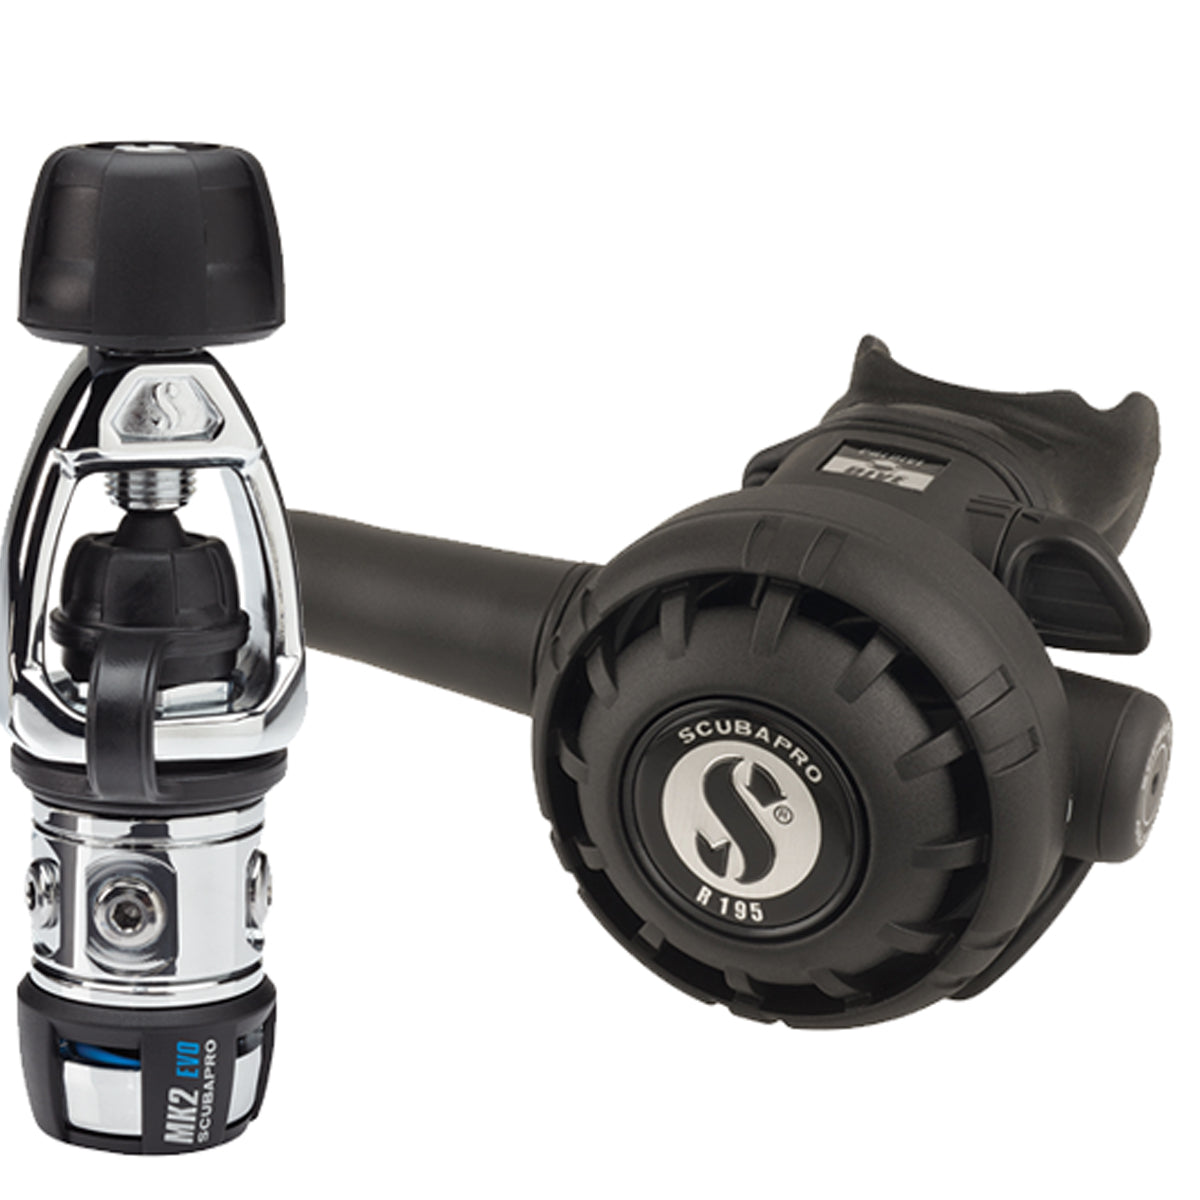 MK2 EVO/R195 DIVE REGULATOR SYSTEM